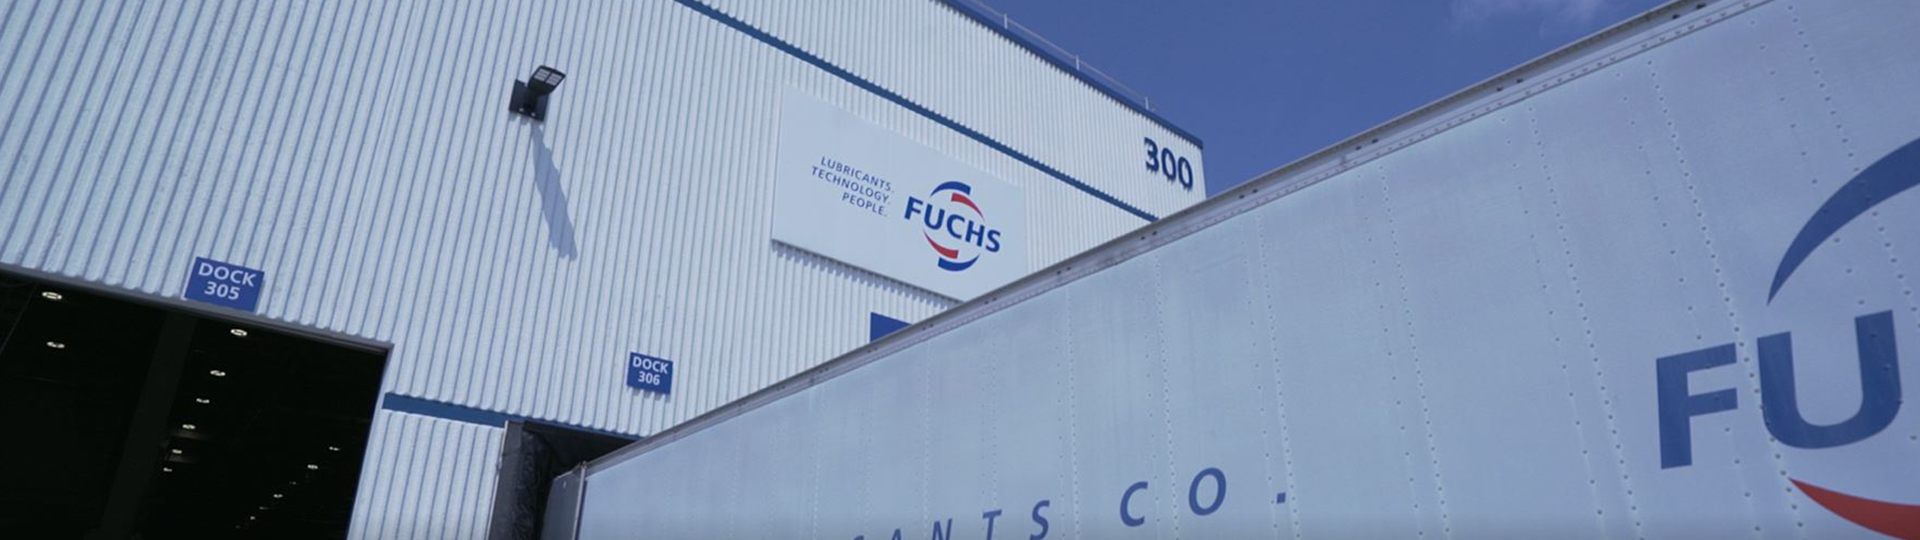 us | FUCHS LUBRICANTS CO  (United States)